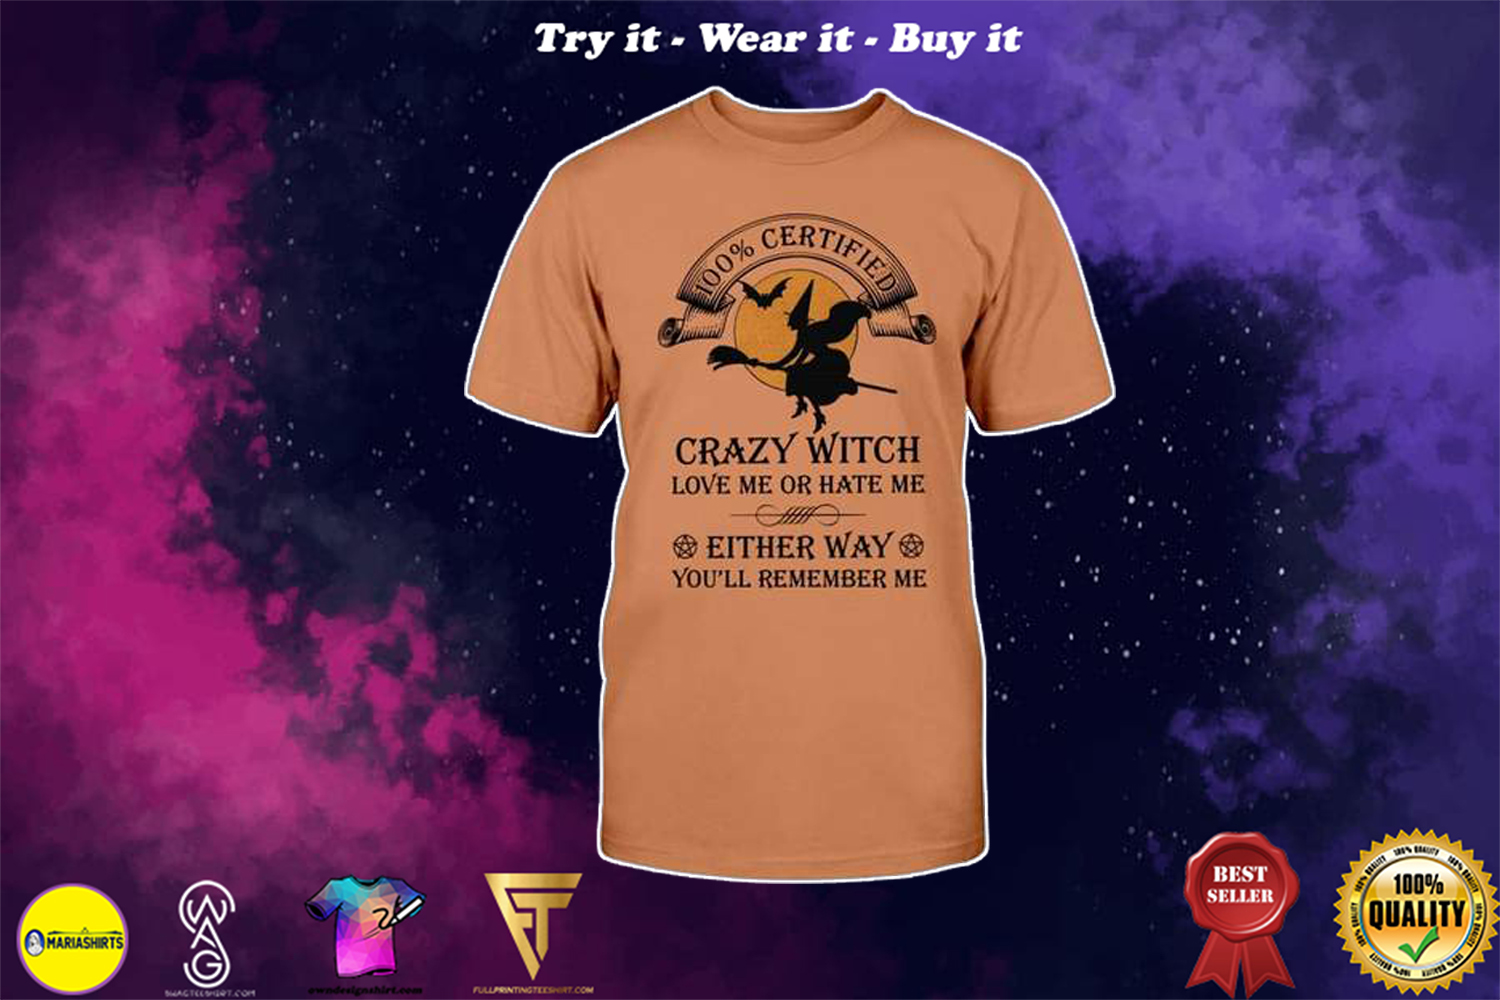 [special edition] halloween 100% certified crazy witch love me or hate me shirt - Maria